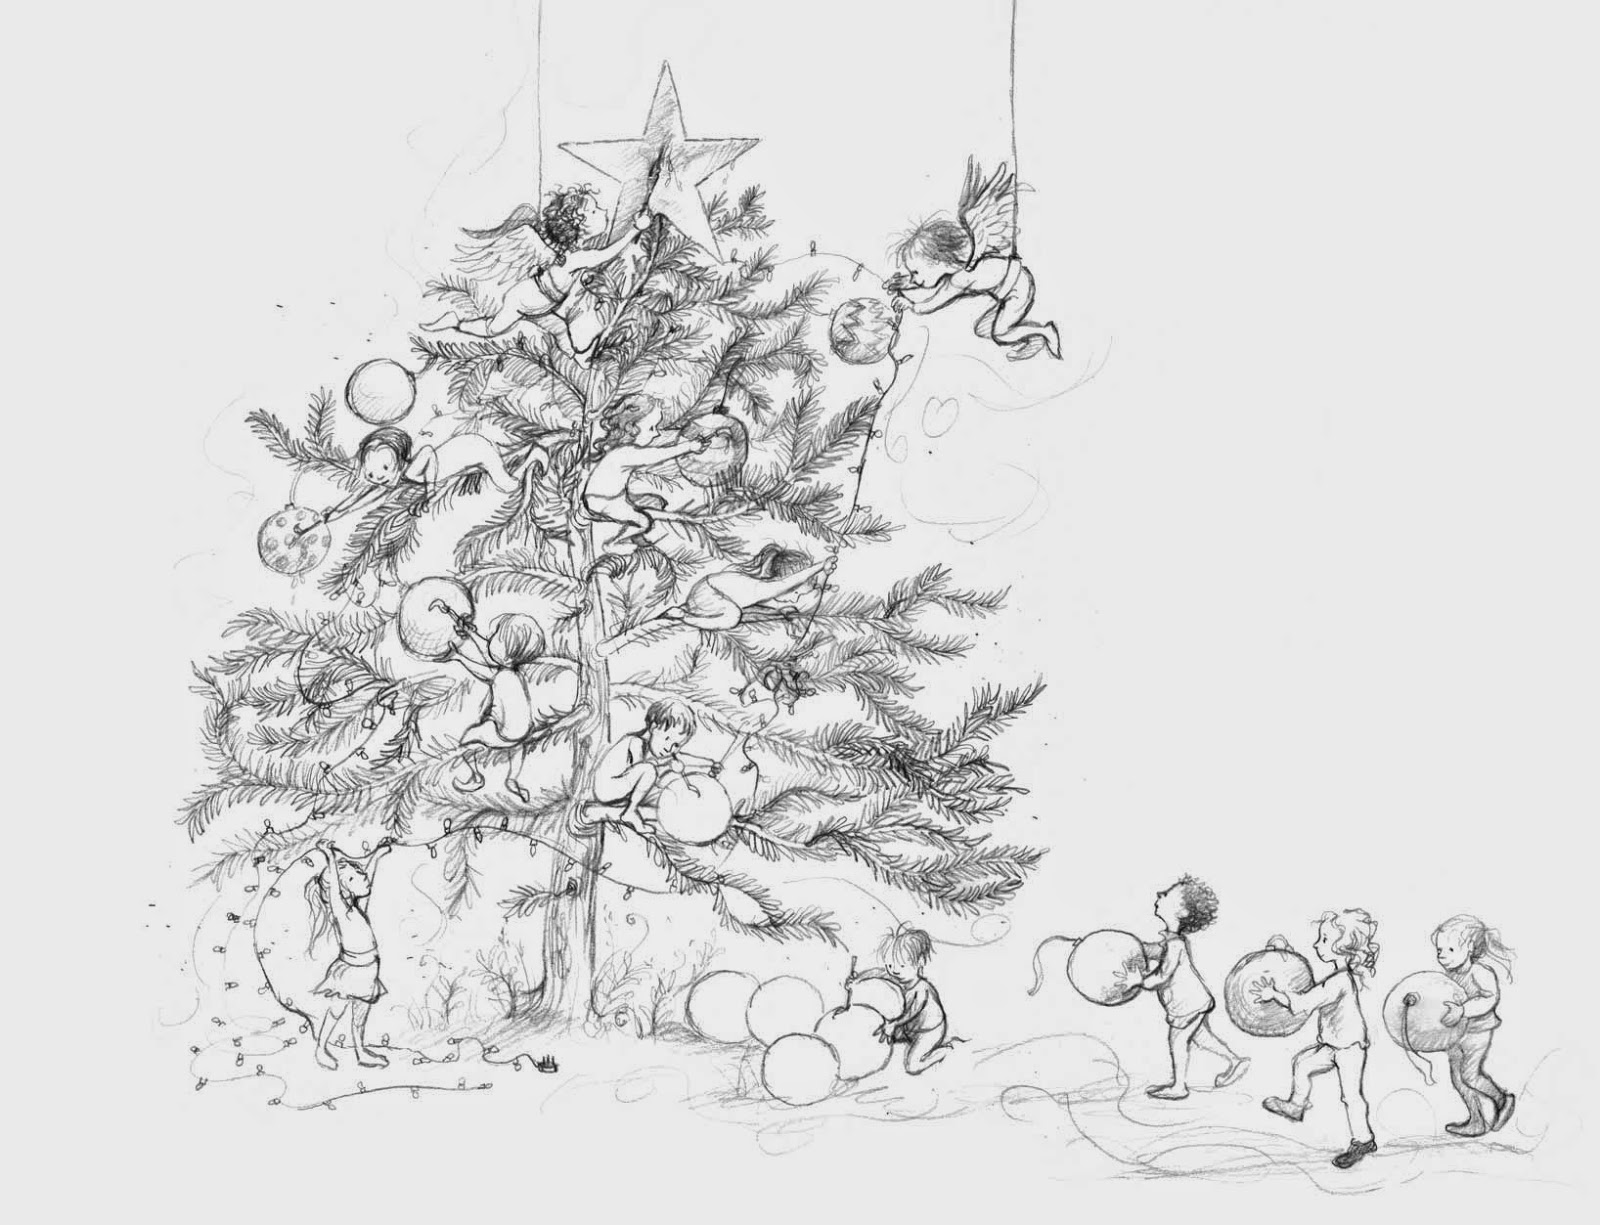 Marjorie's Sketch Blog: We Wish You And Yours A Merry